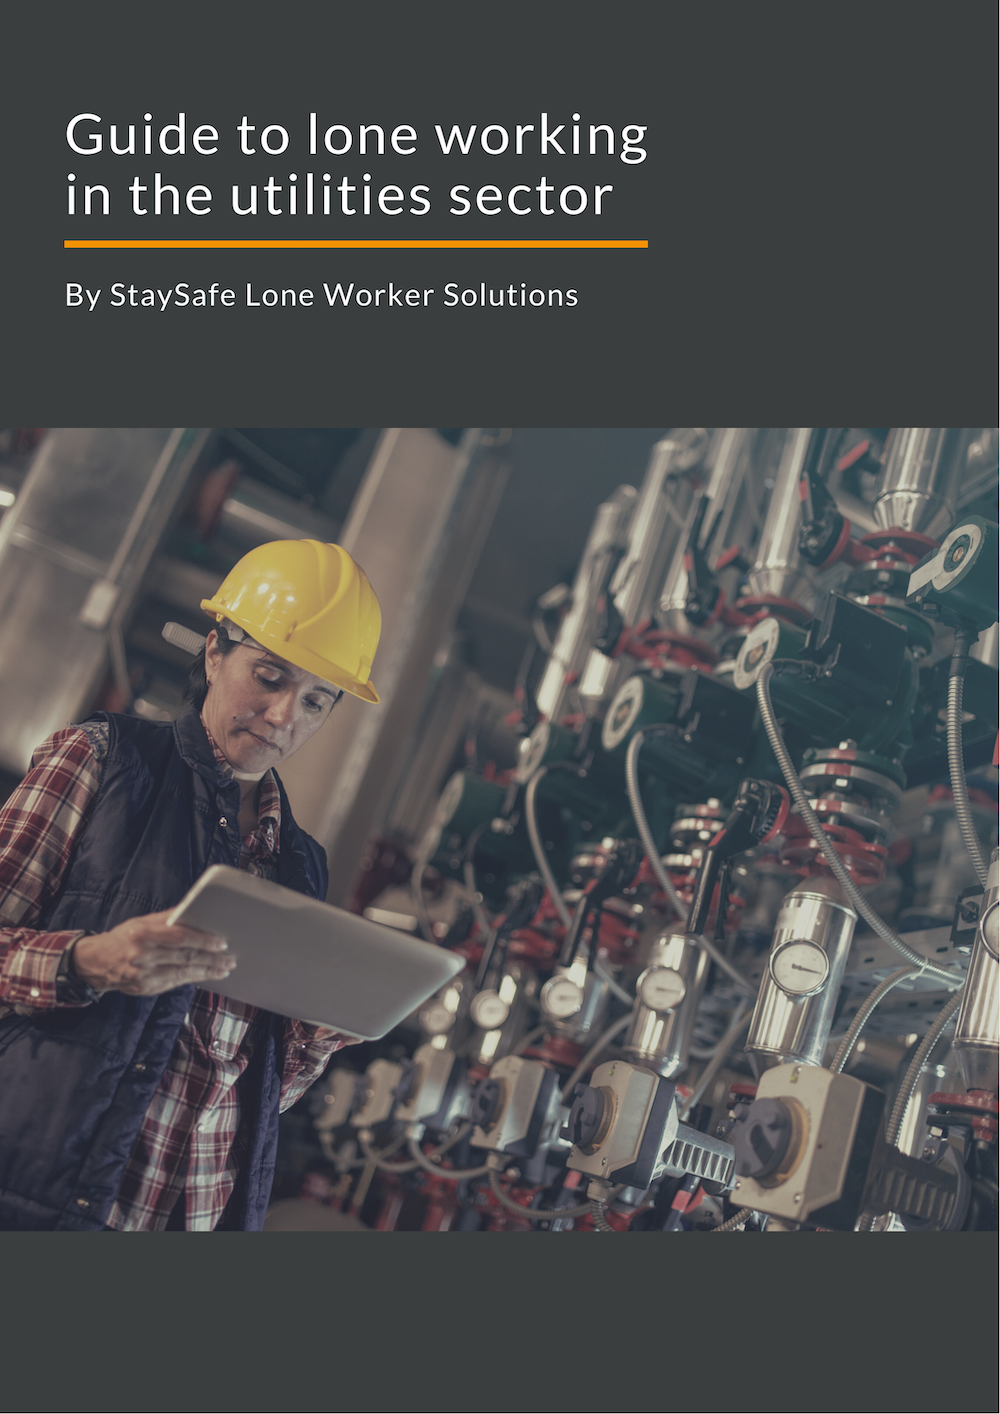 StaySafe guide to lone working in utilities 